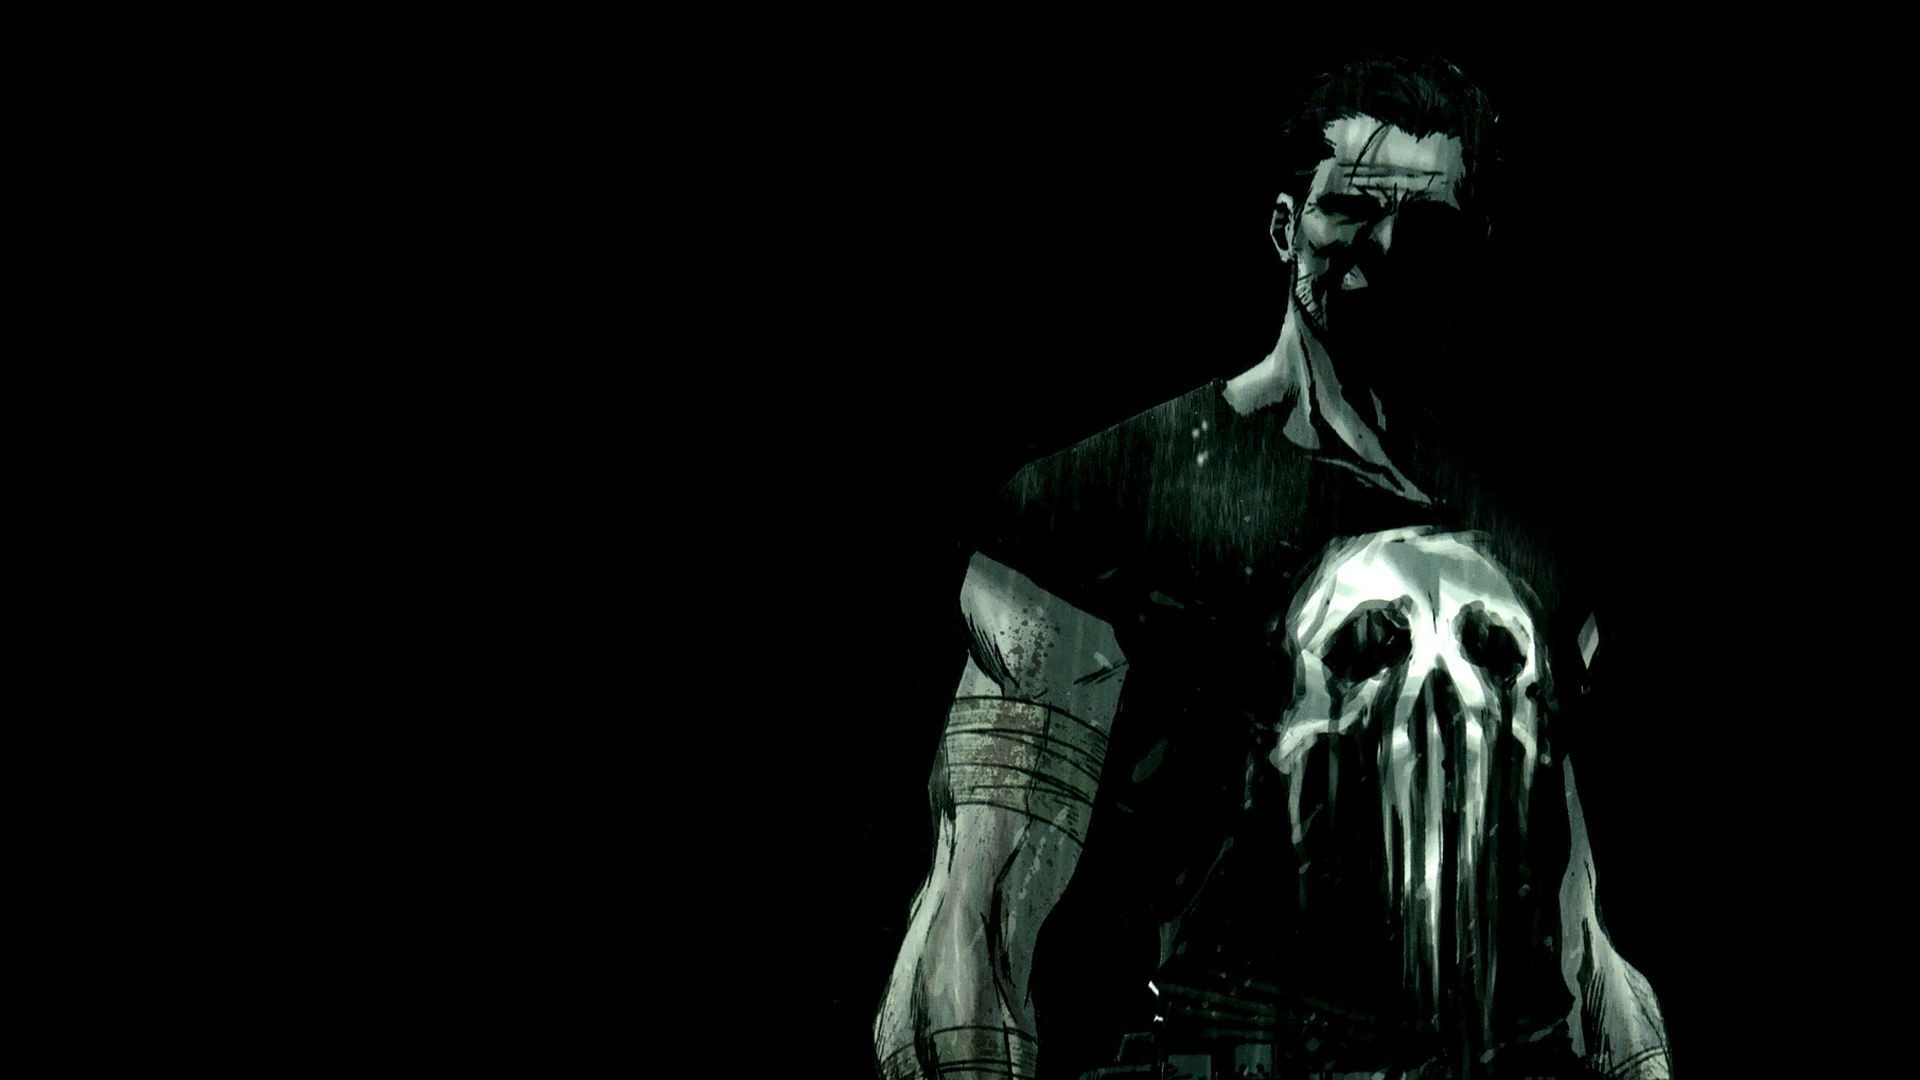 Res: 1920x1080, The Punisher Skull Wallpapers - Wallpaper Cave